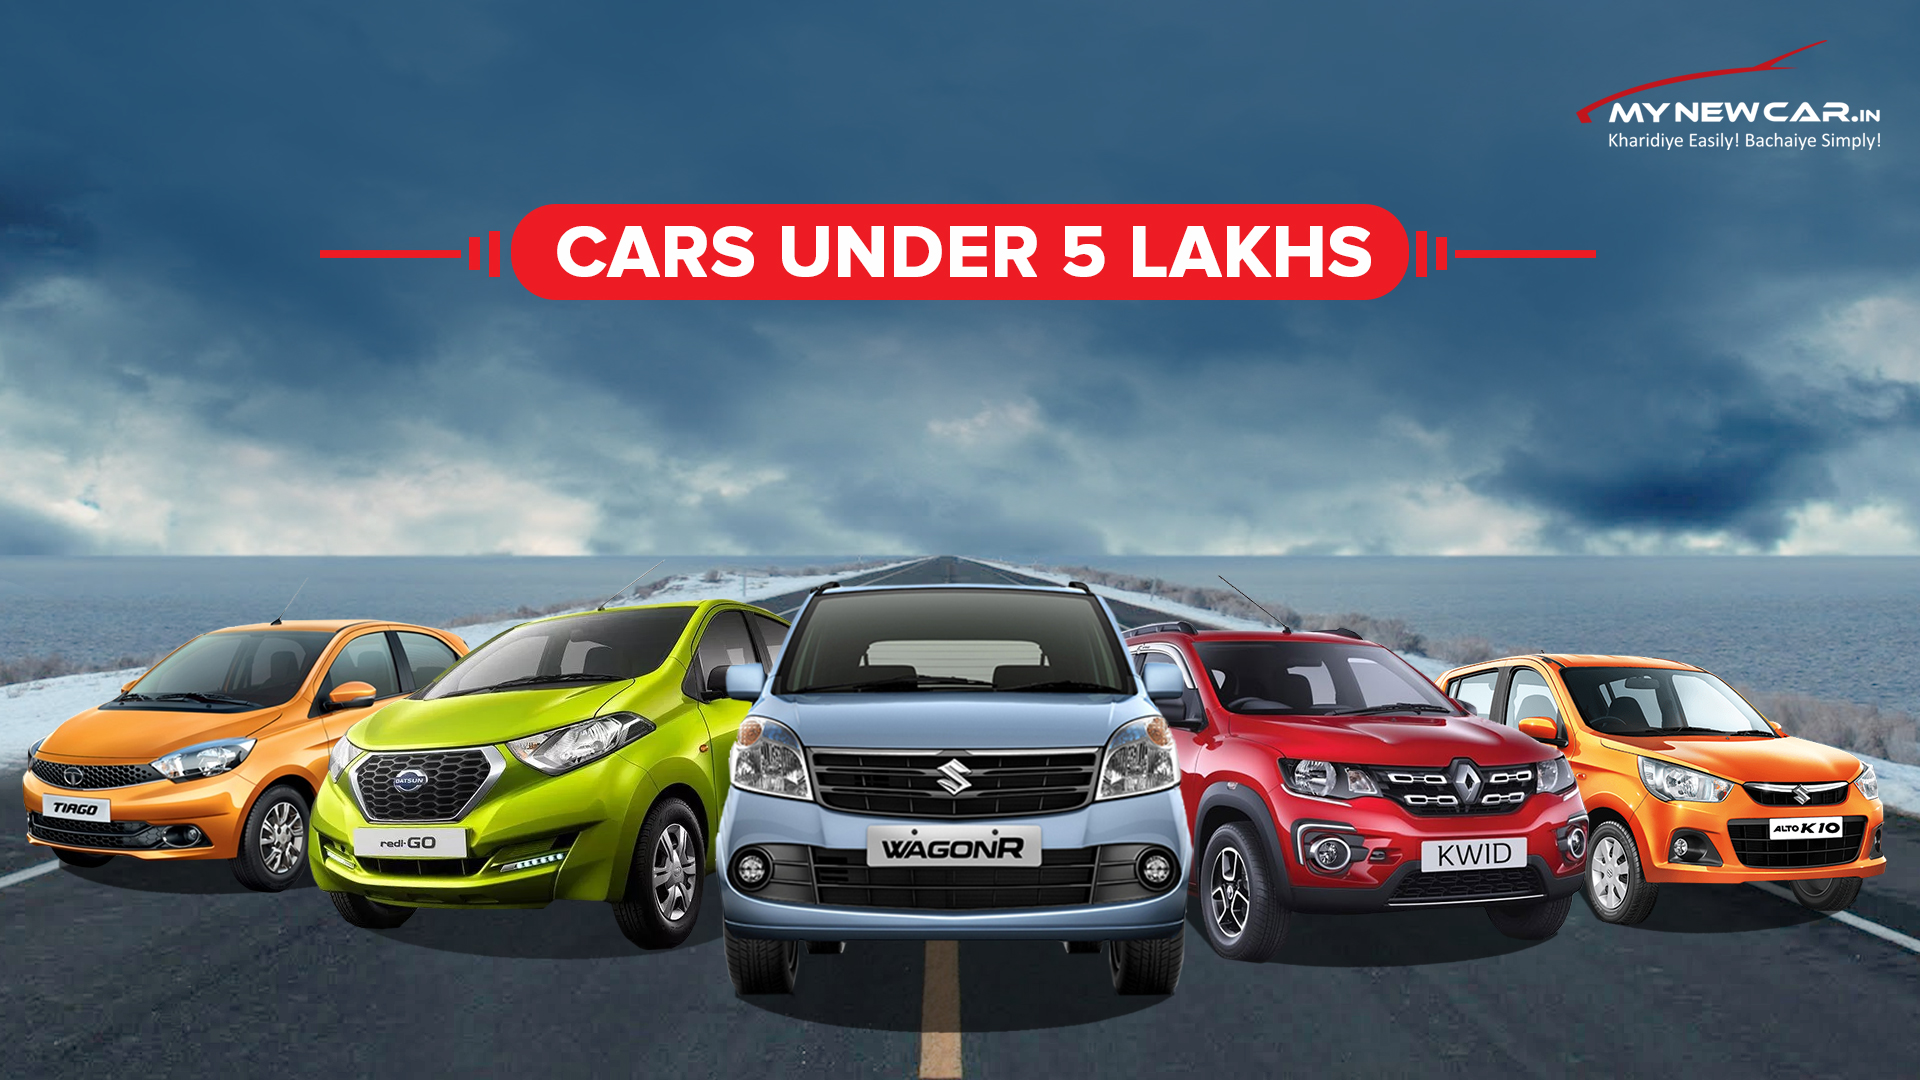 Cars Under 5 Lakhs: I Wish I Knew This Before Buying A New Car